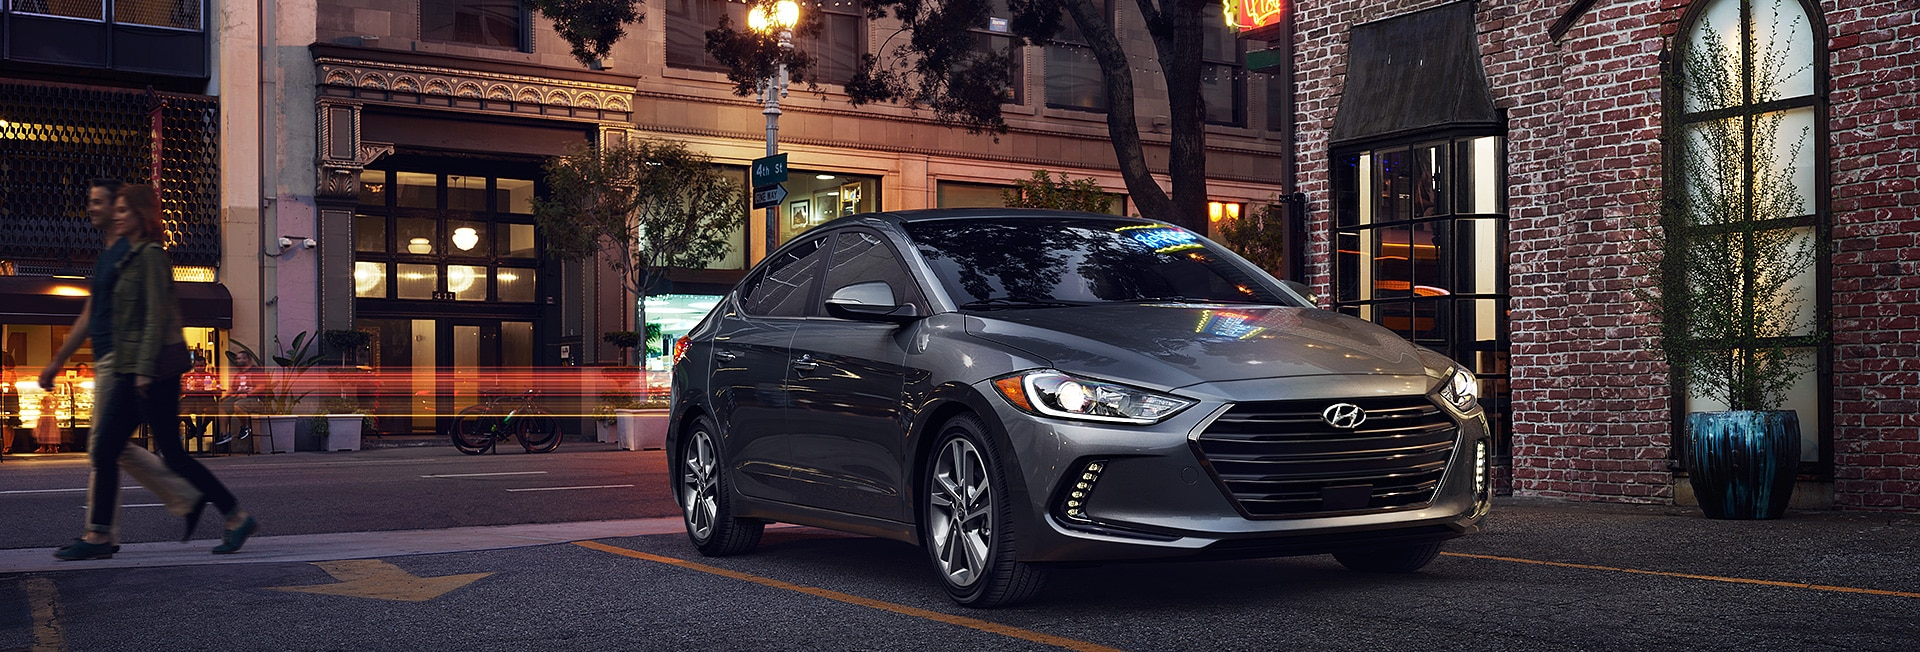 finance used ioniq hemet new image and exterior hyundai ca main a lease is car offers gosch dealer